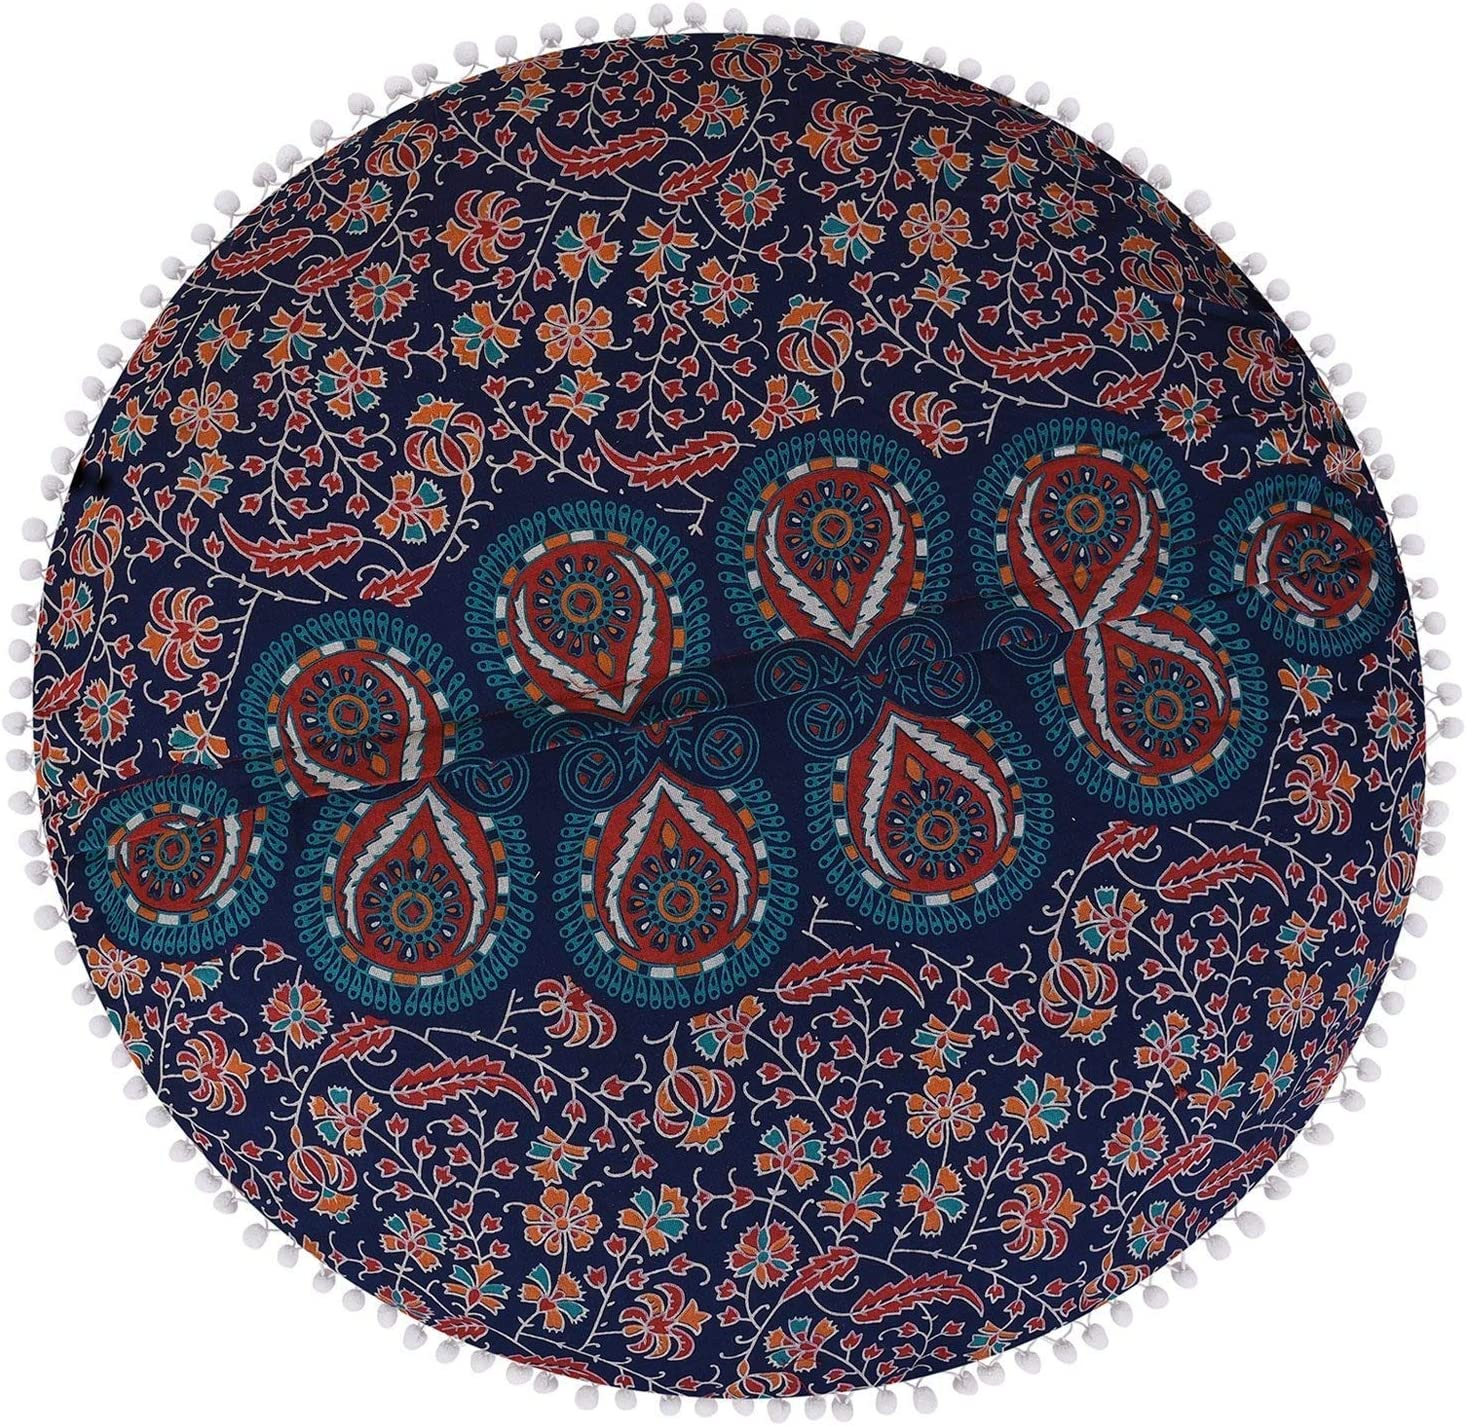 32 Mandala Hippie Floor Pillows Cushion Seating Throw Round Cover Boho Home Beach Picnic Decorative Pouf Large Sham Psychedelic Hall Bedroom Design Yoga Ottomans Modern Outdoor Nature Cotton Fabric